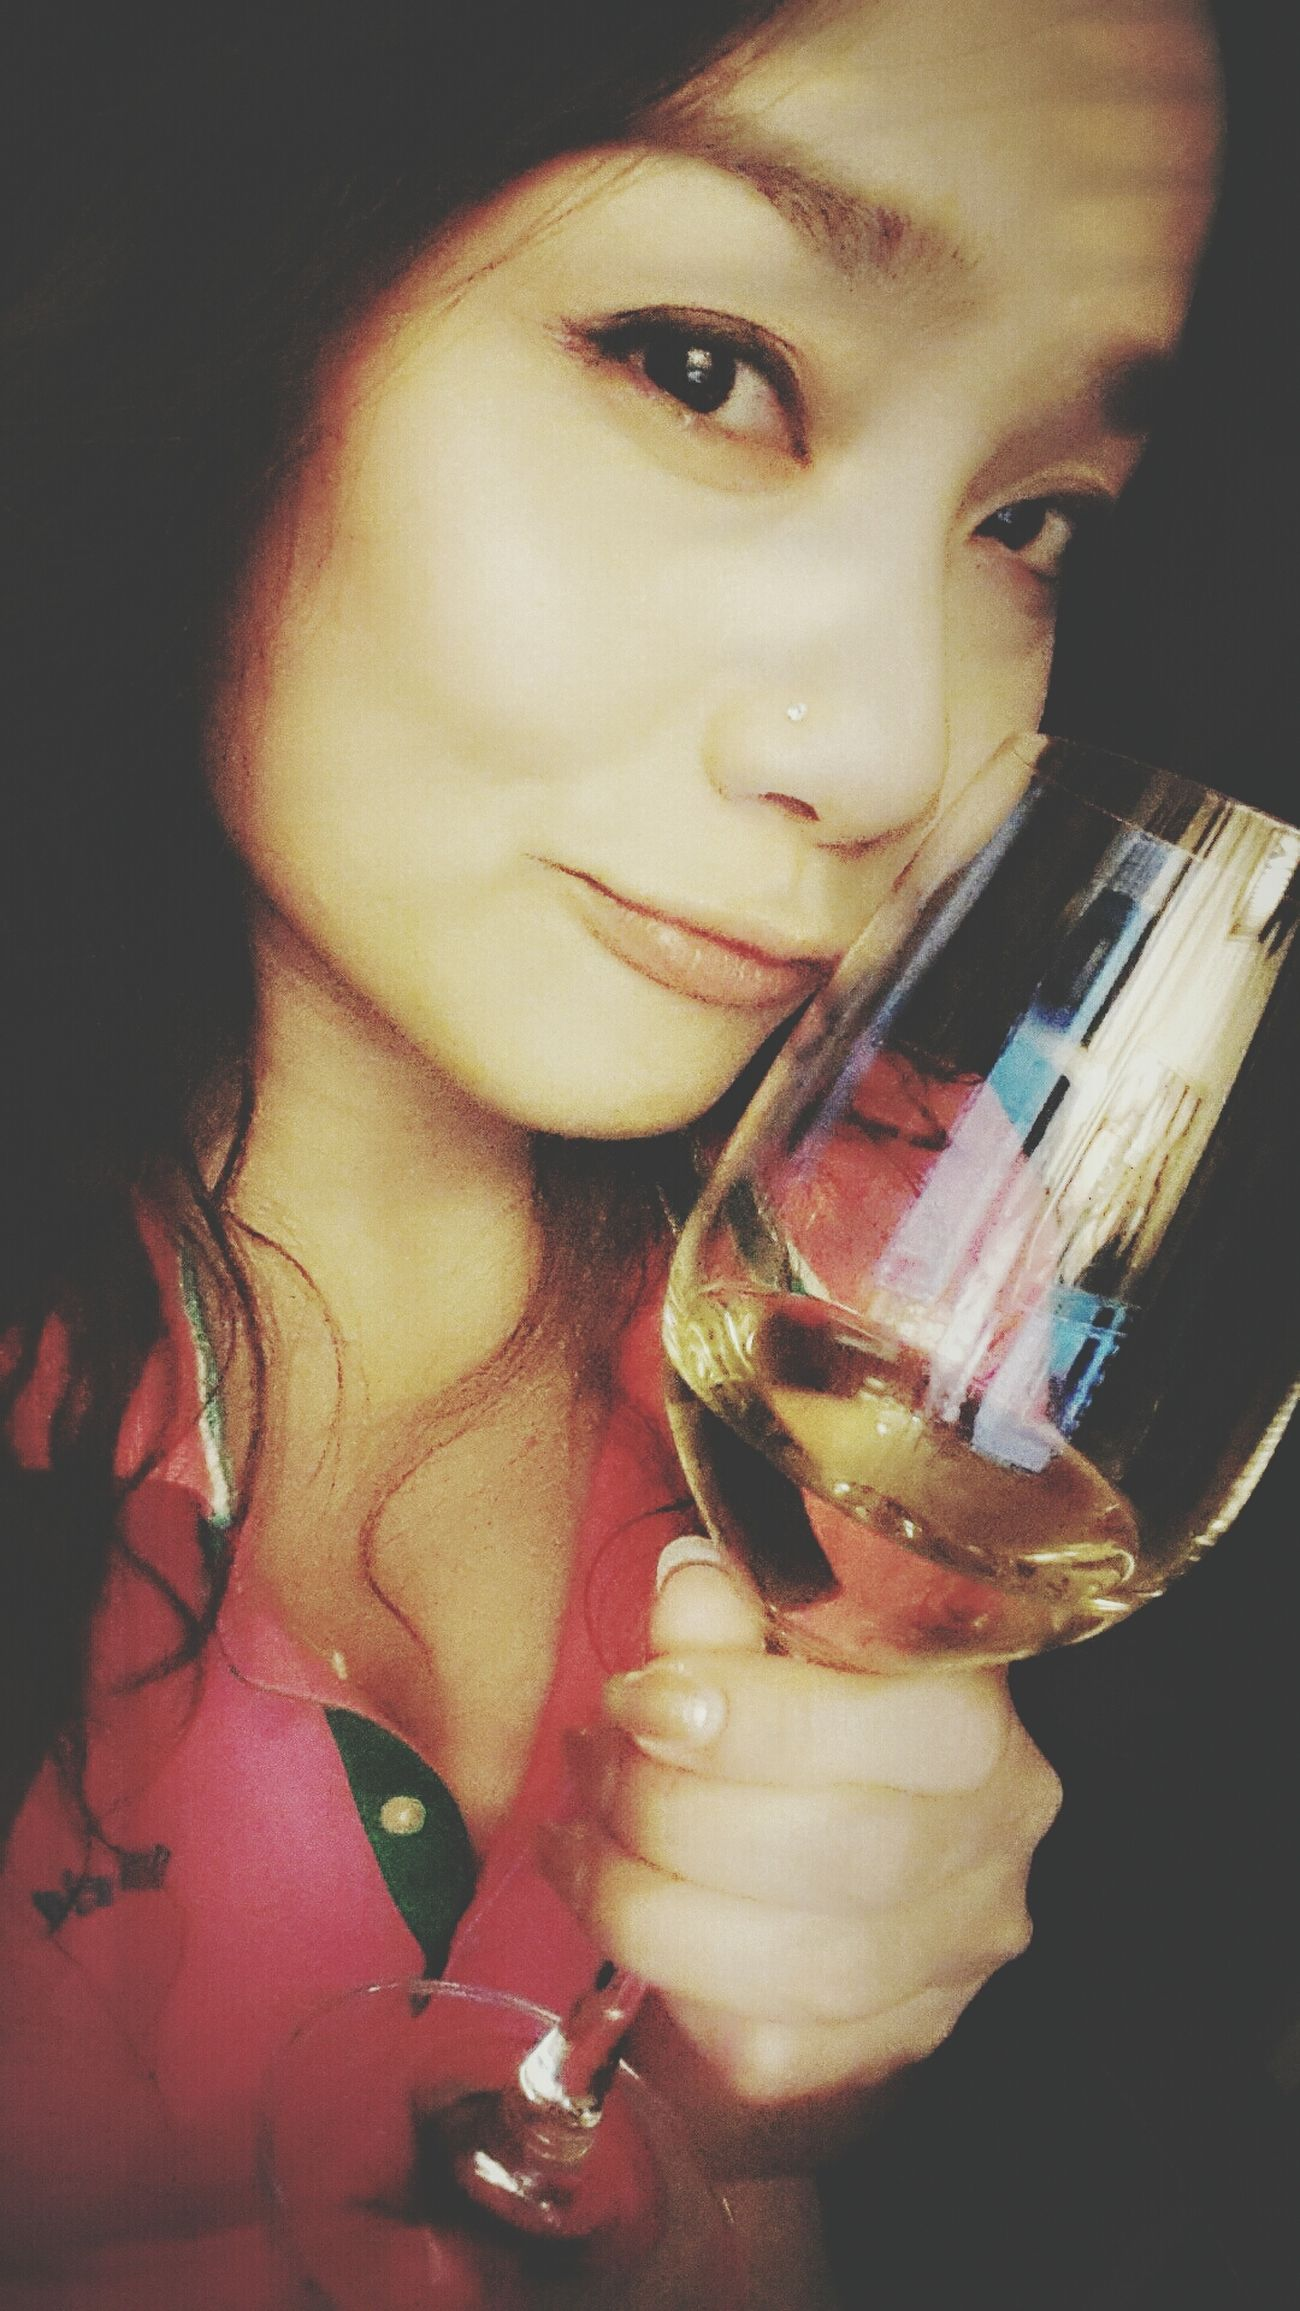 Hello World It's Me and my wine... Enjoying Life Gettin Tipsy lol :)